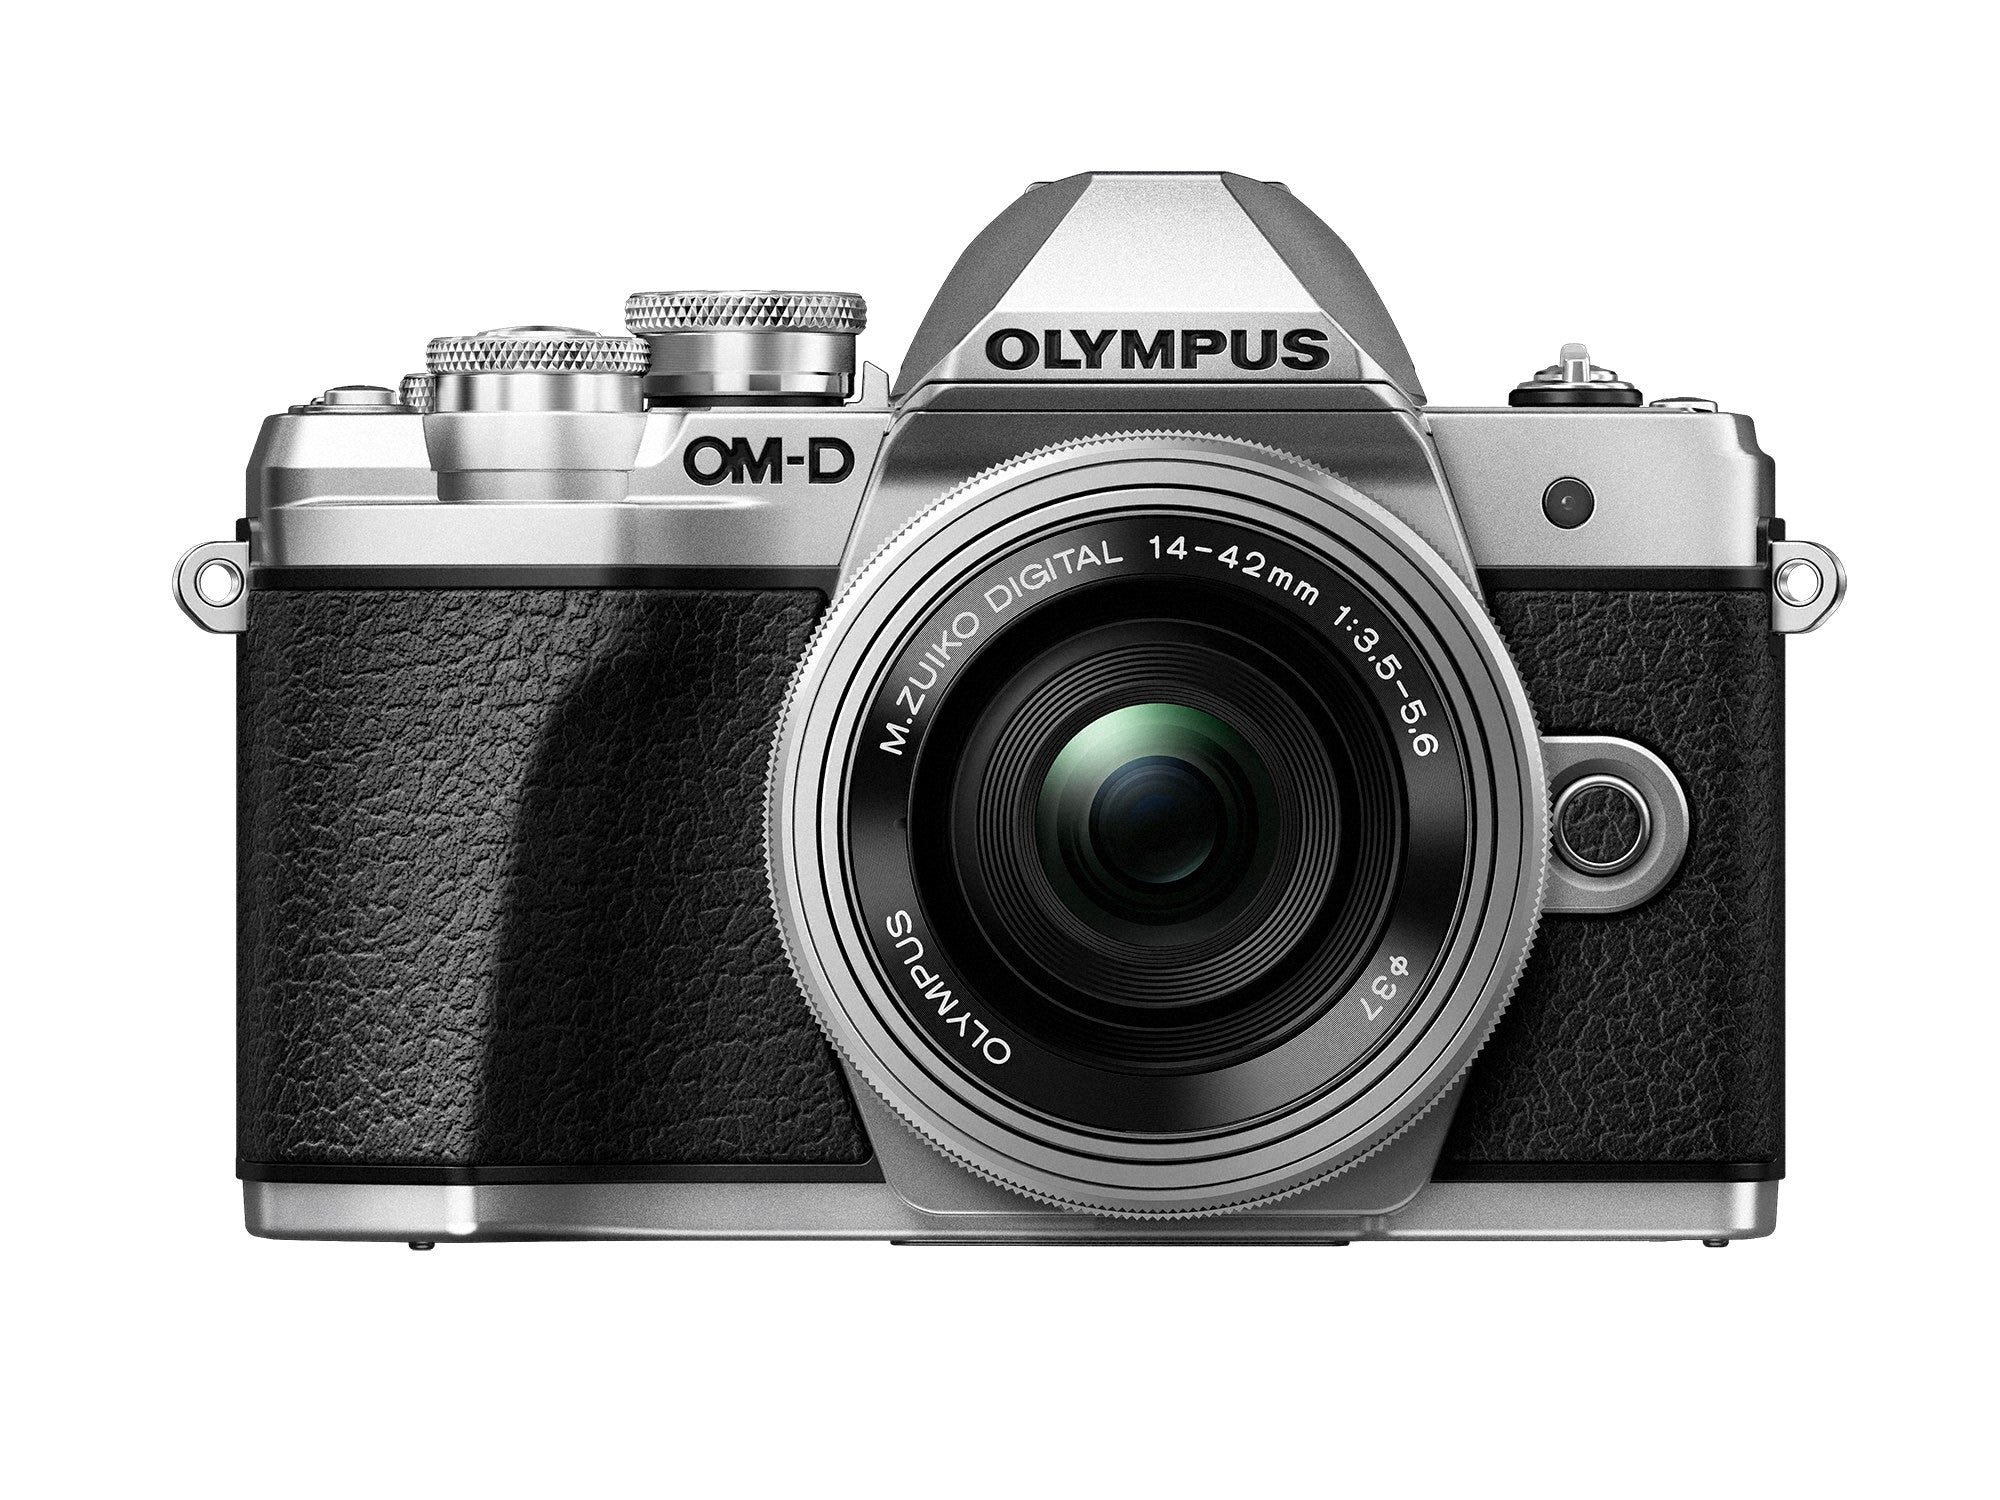 Olympus OM-D E-M10 Mark III with 14-42mm EZ - Silver